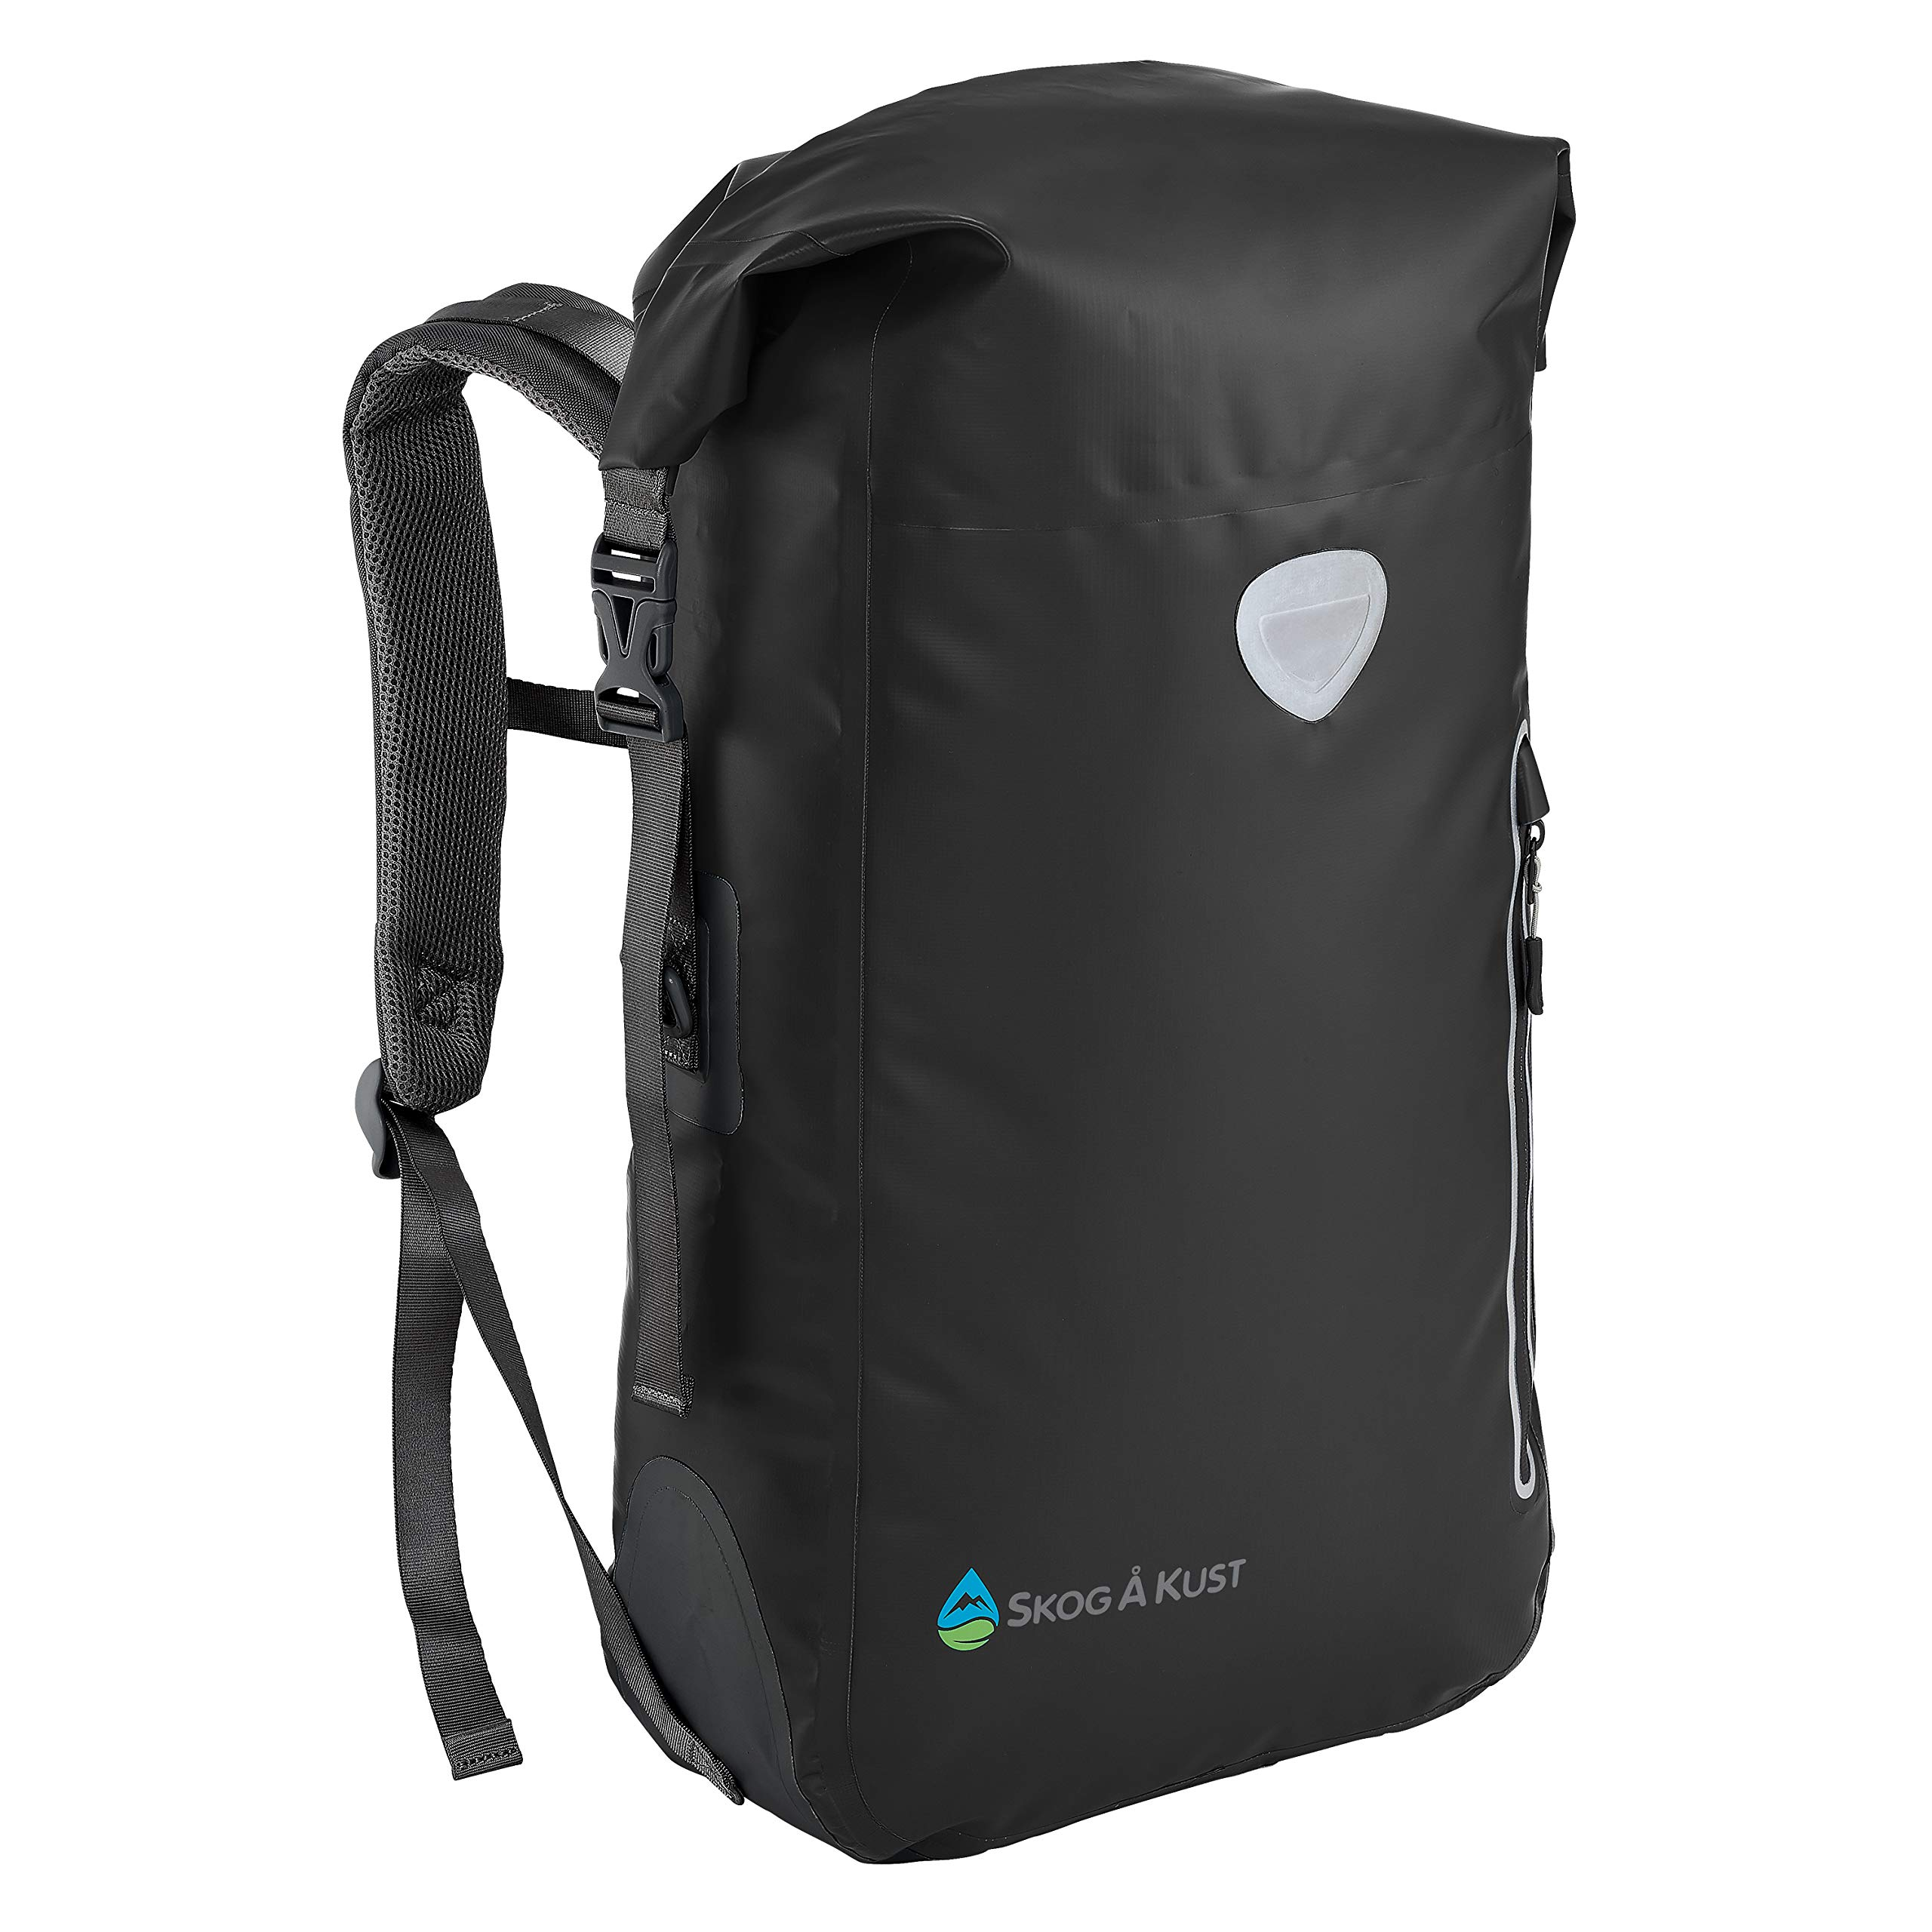 Såk Gear BackSåk Waterproof Backpack | 35L Black by Såk Gear